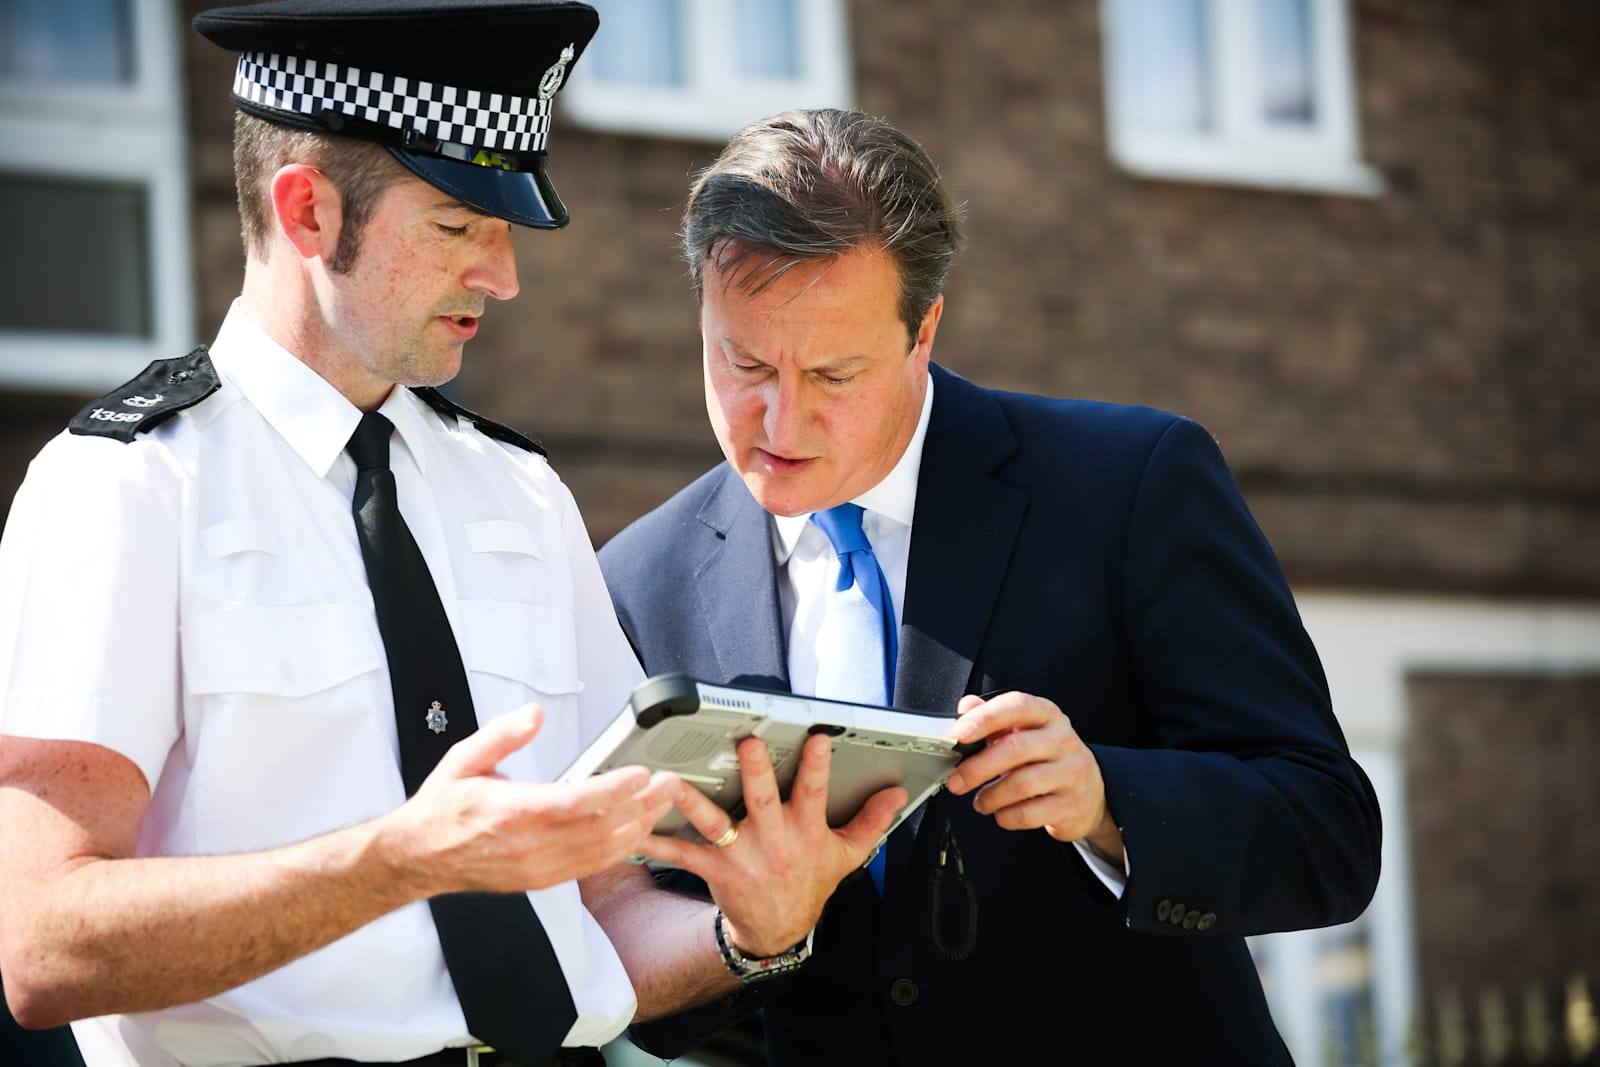 UK police often misuse sensitive data for personal reasons